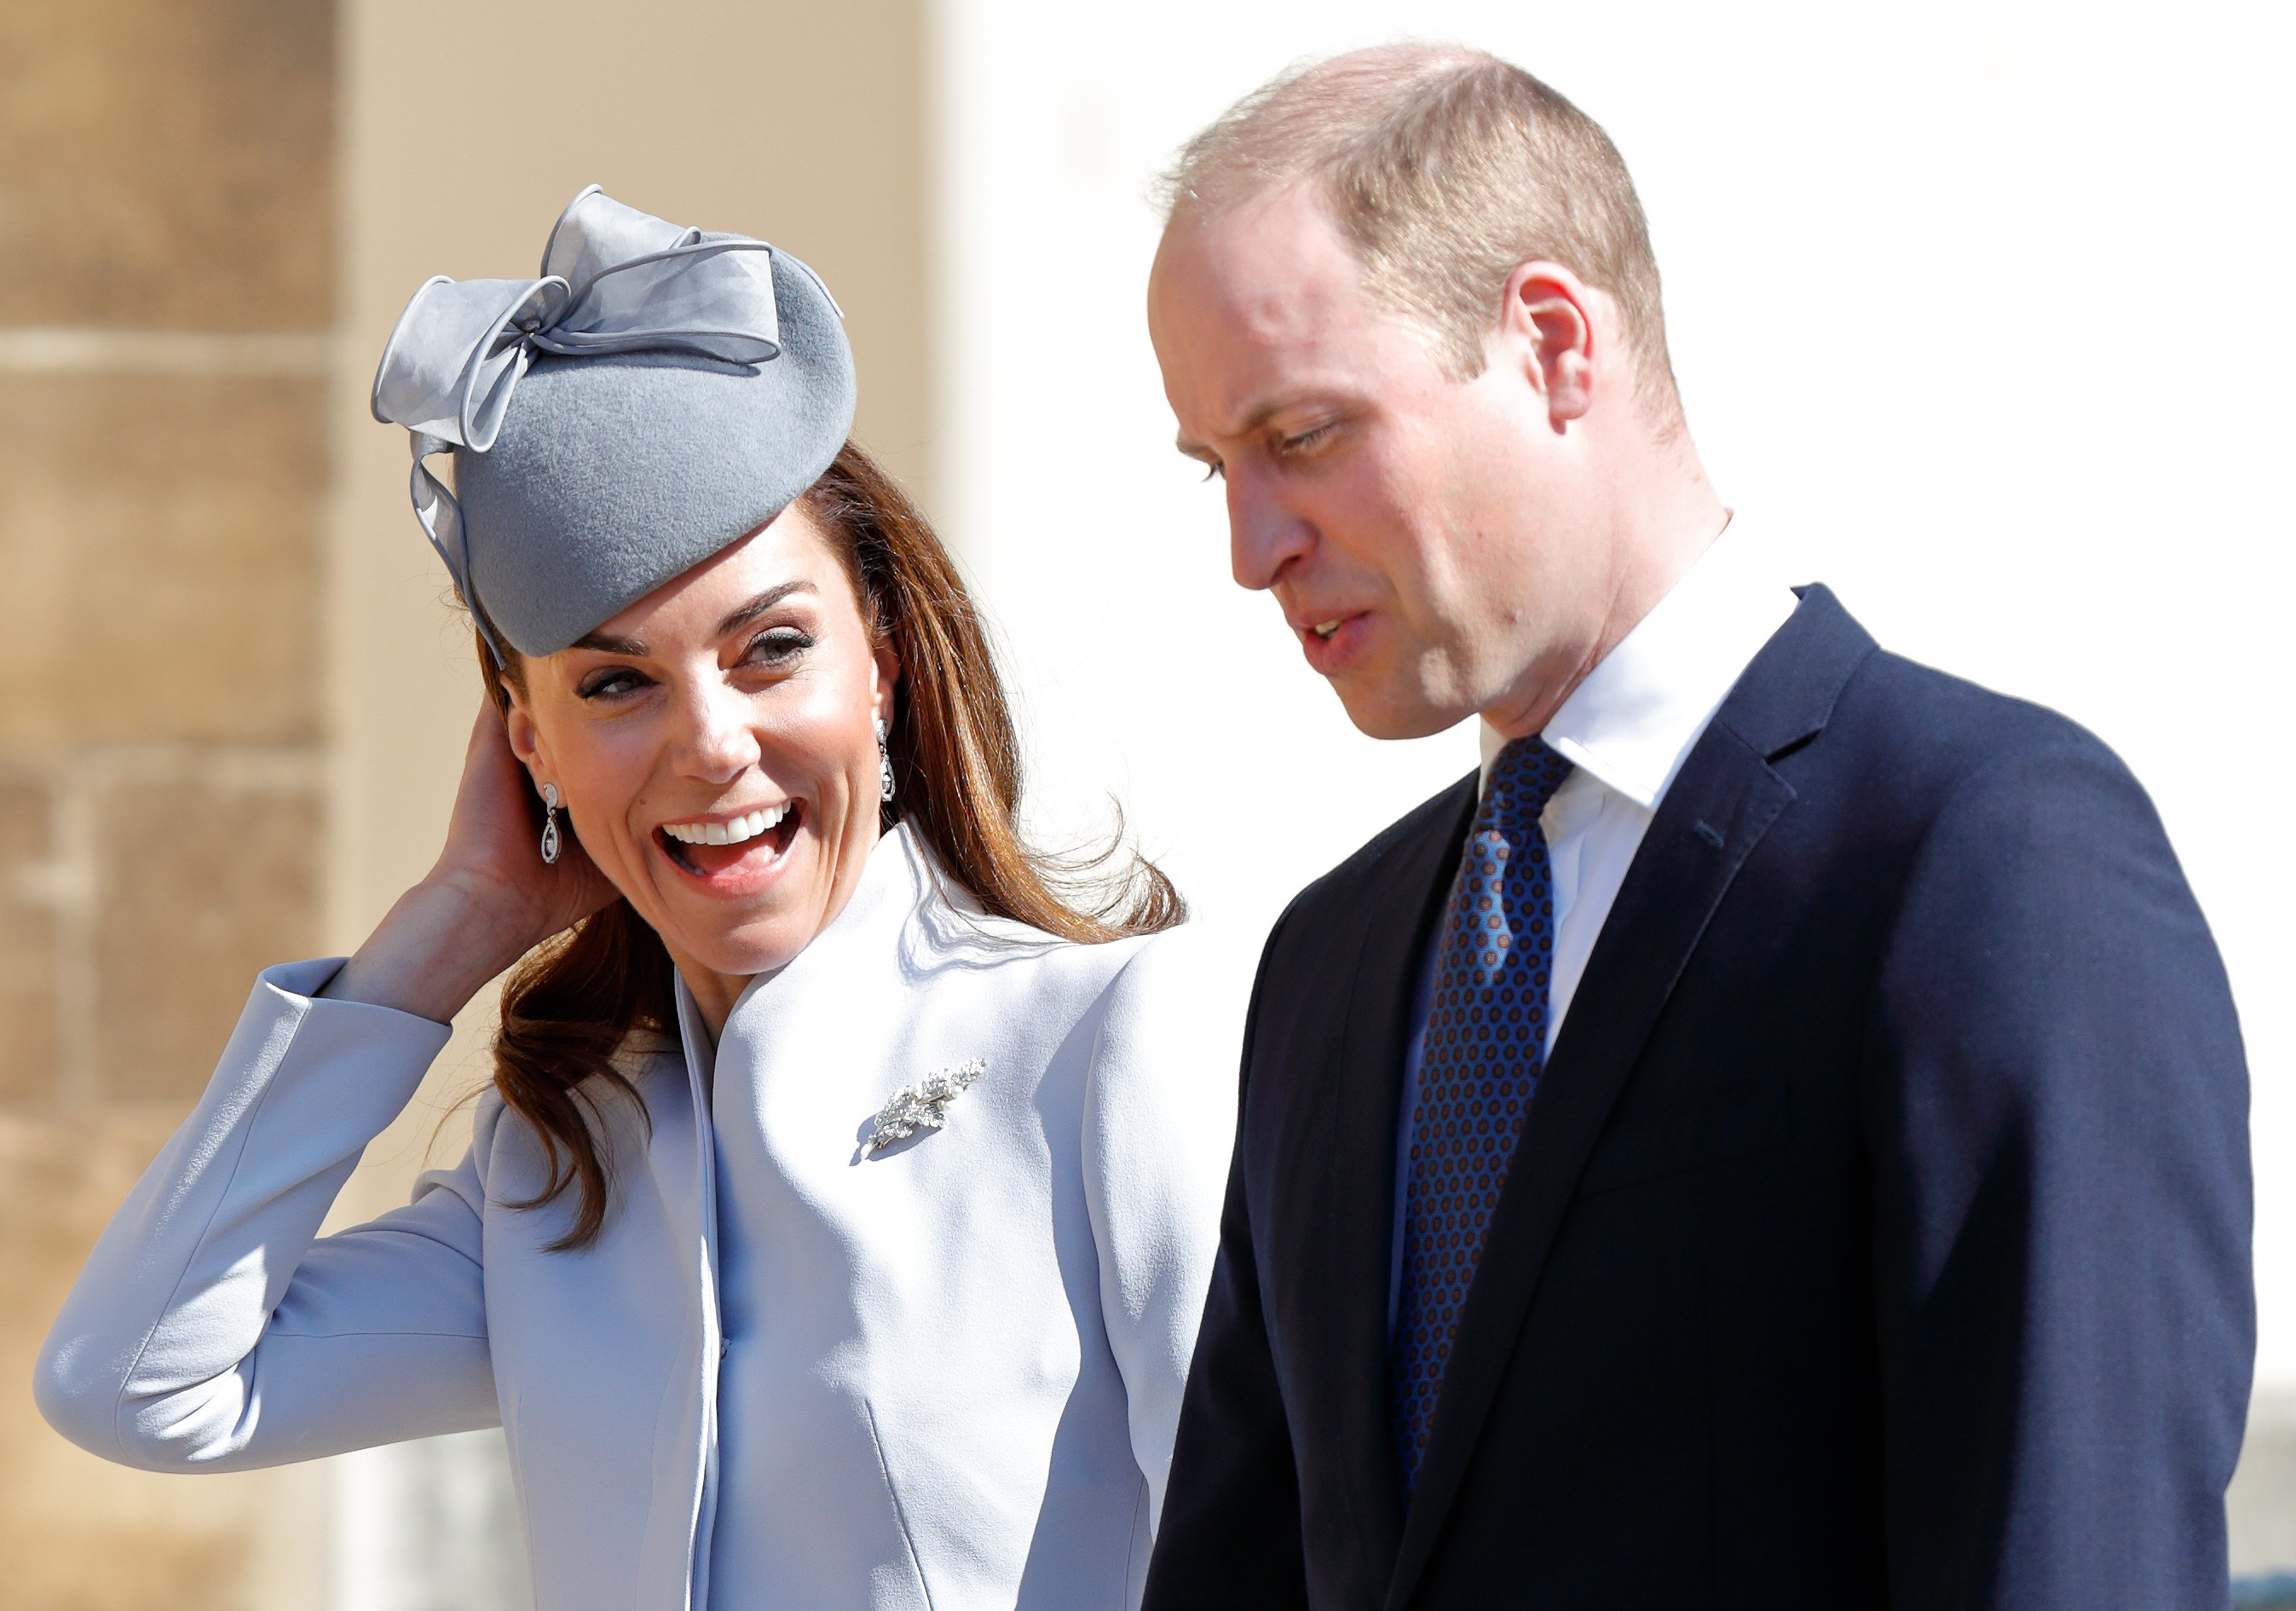 Kate Middleton and Prince William attend the Easter Sunday church service in Windsor, England on April 21, 2019 | Photo: Getty Images